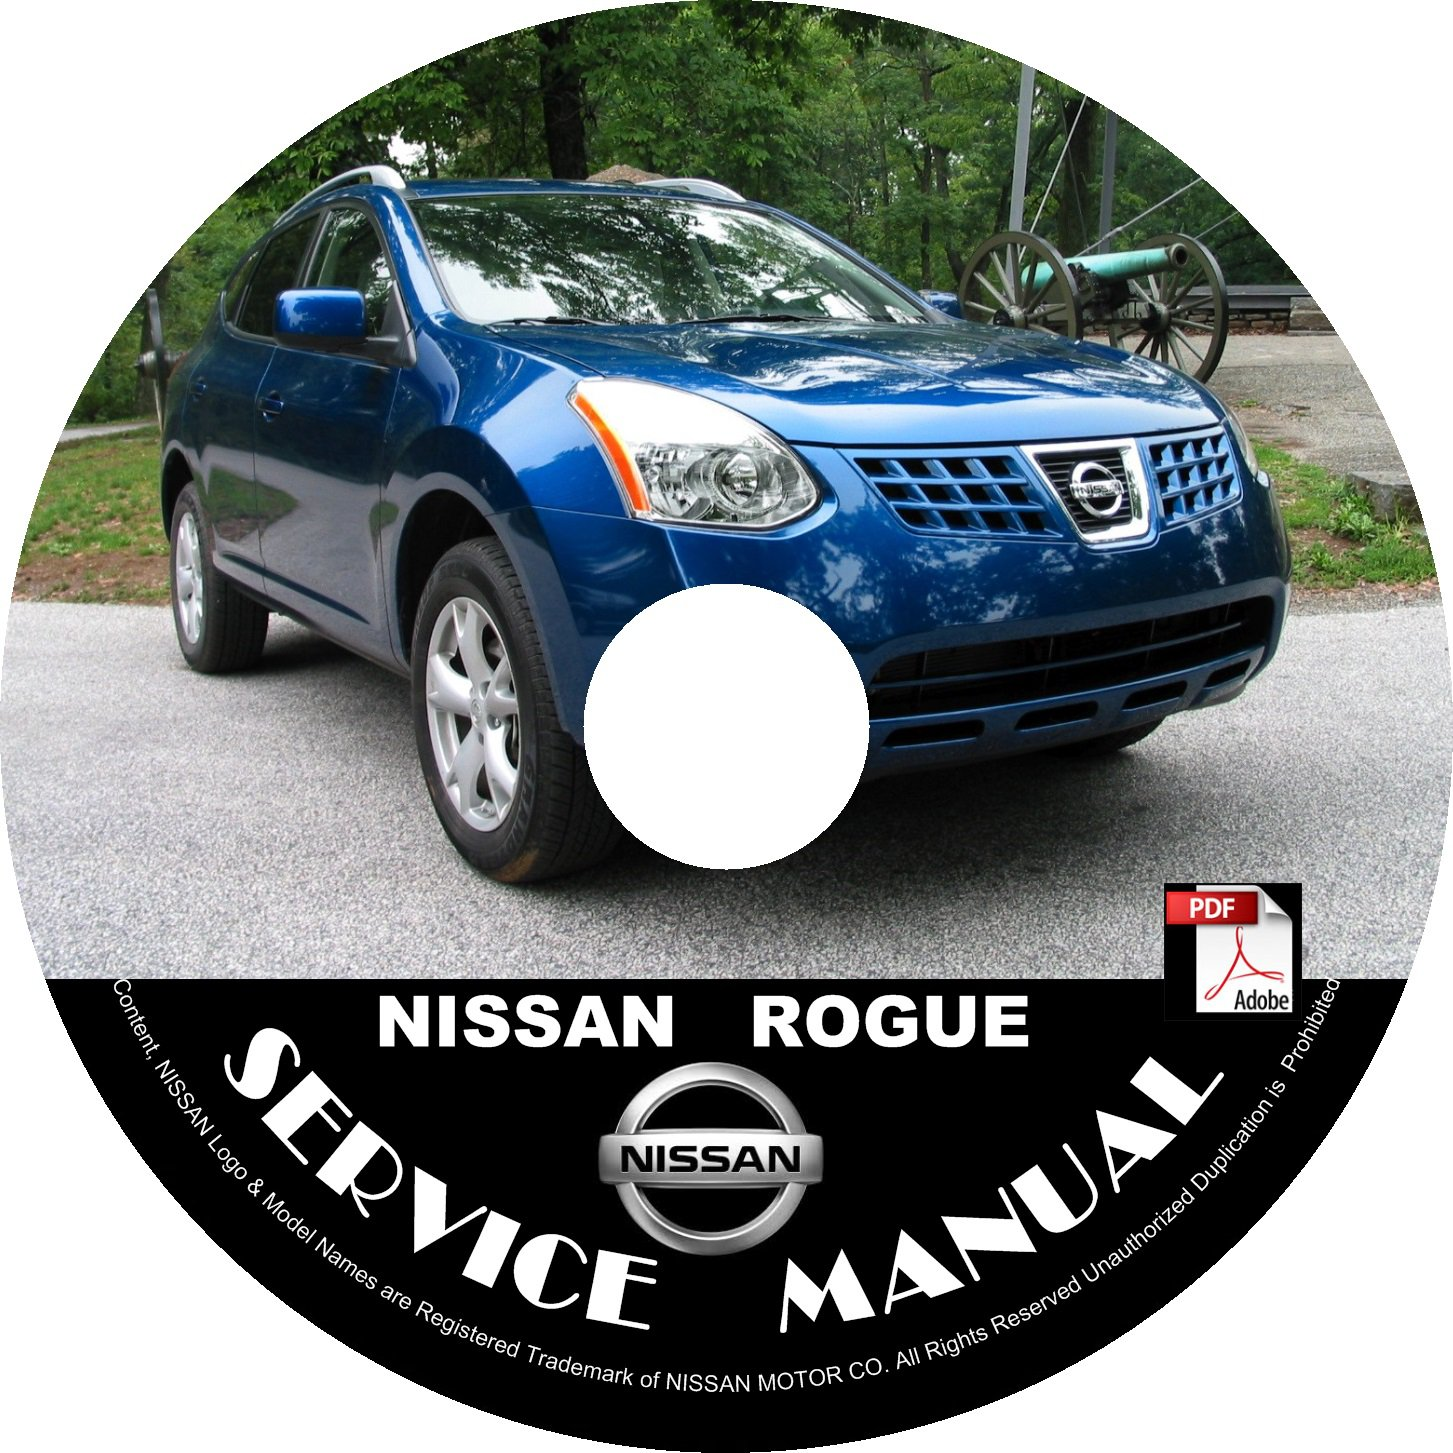 2008 Nissan Rogue Service Repair Shop Manual on CD Fix Repair Rebuild 08 Workshop Guide